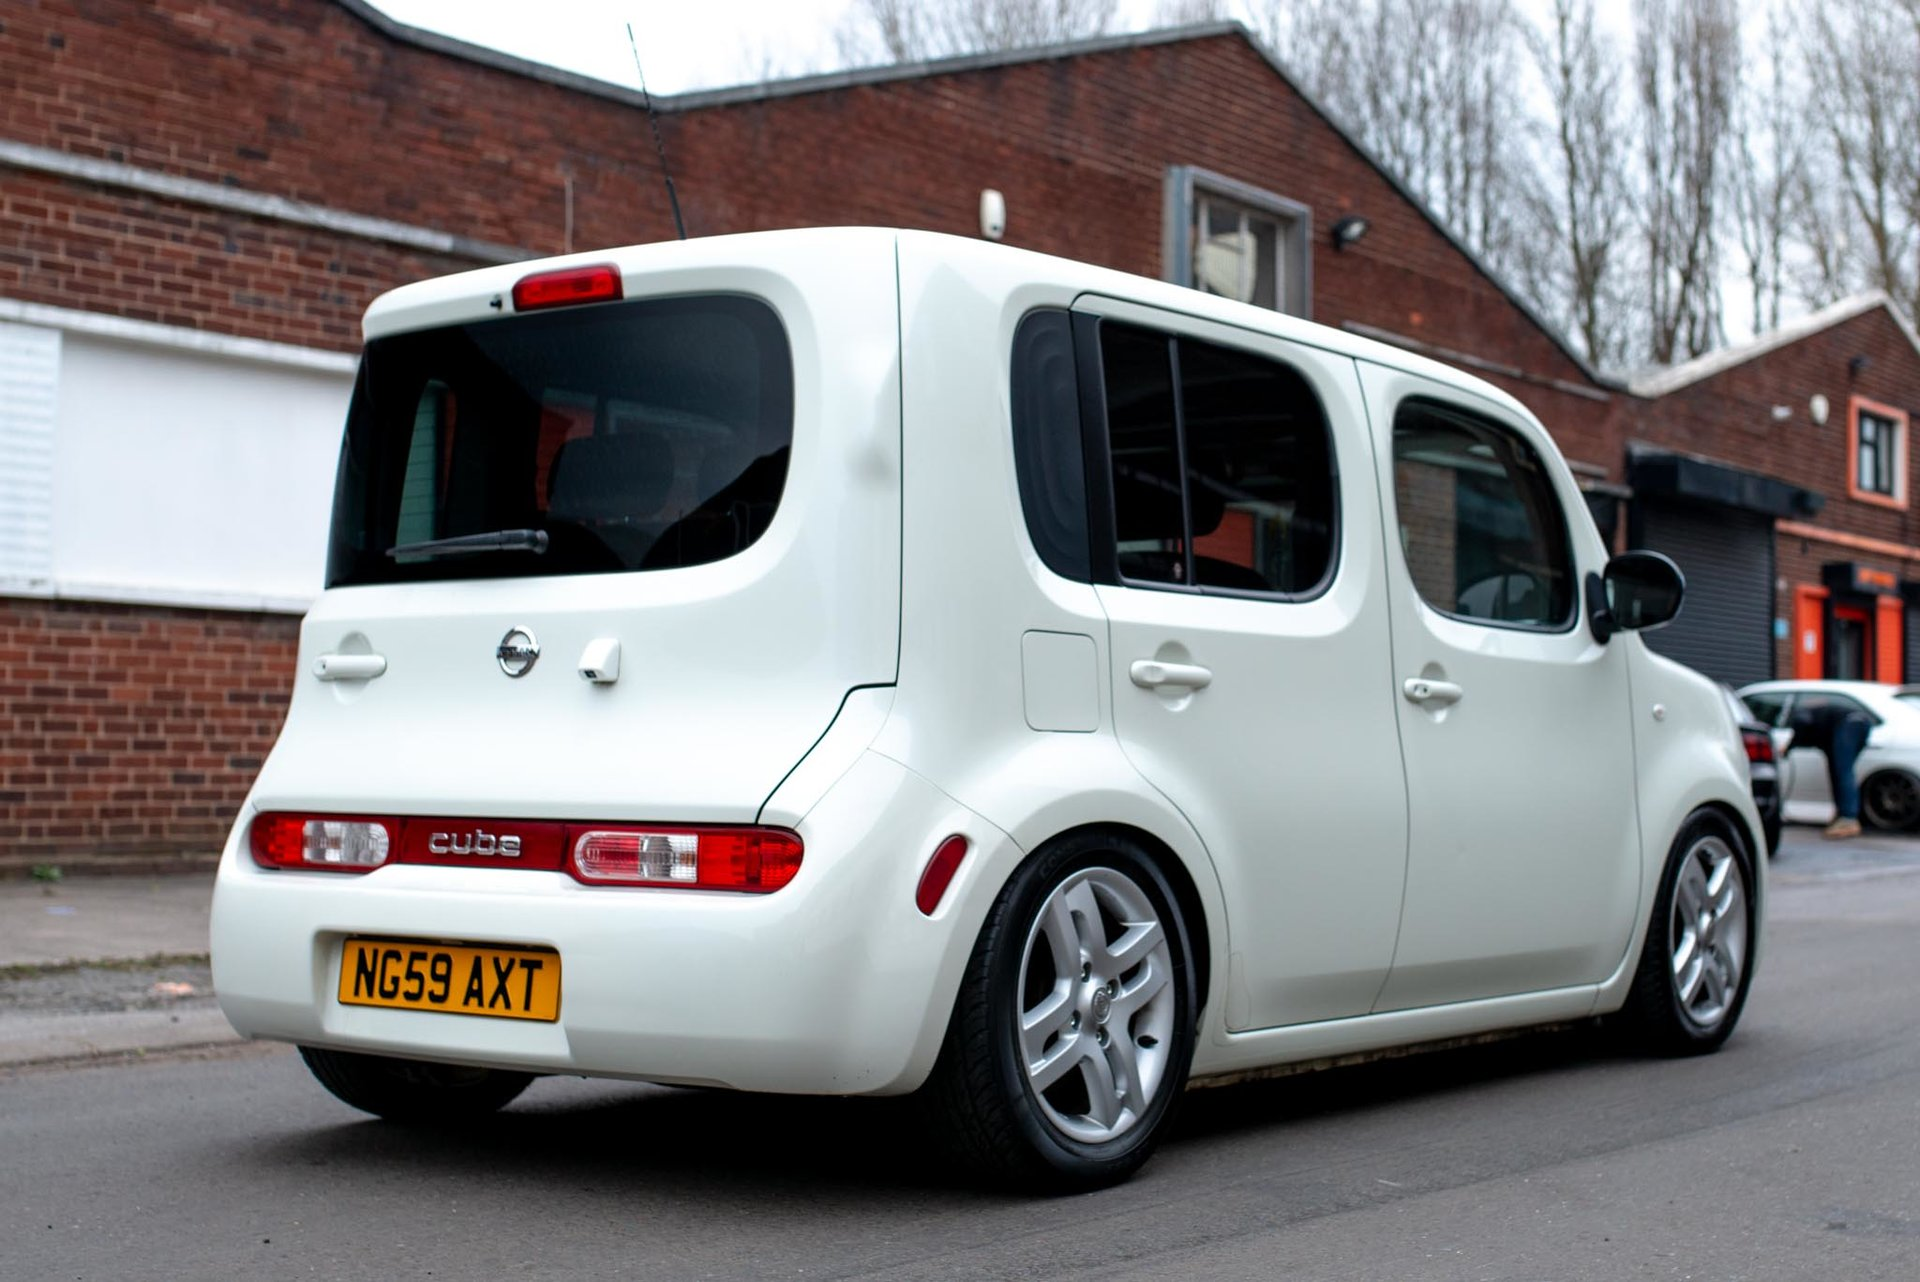 hight resolution of for sale nissan cube kaizen